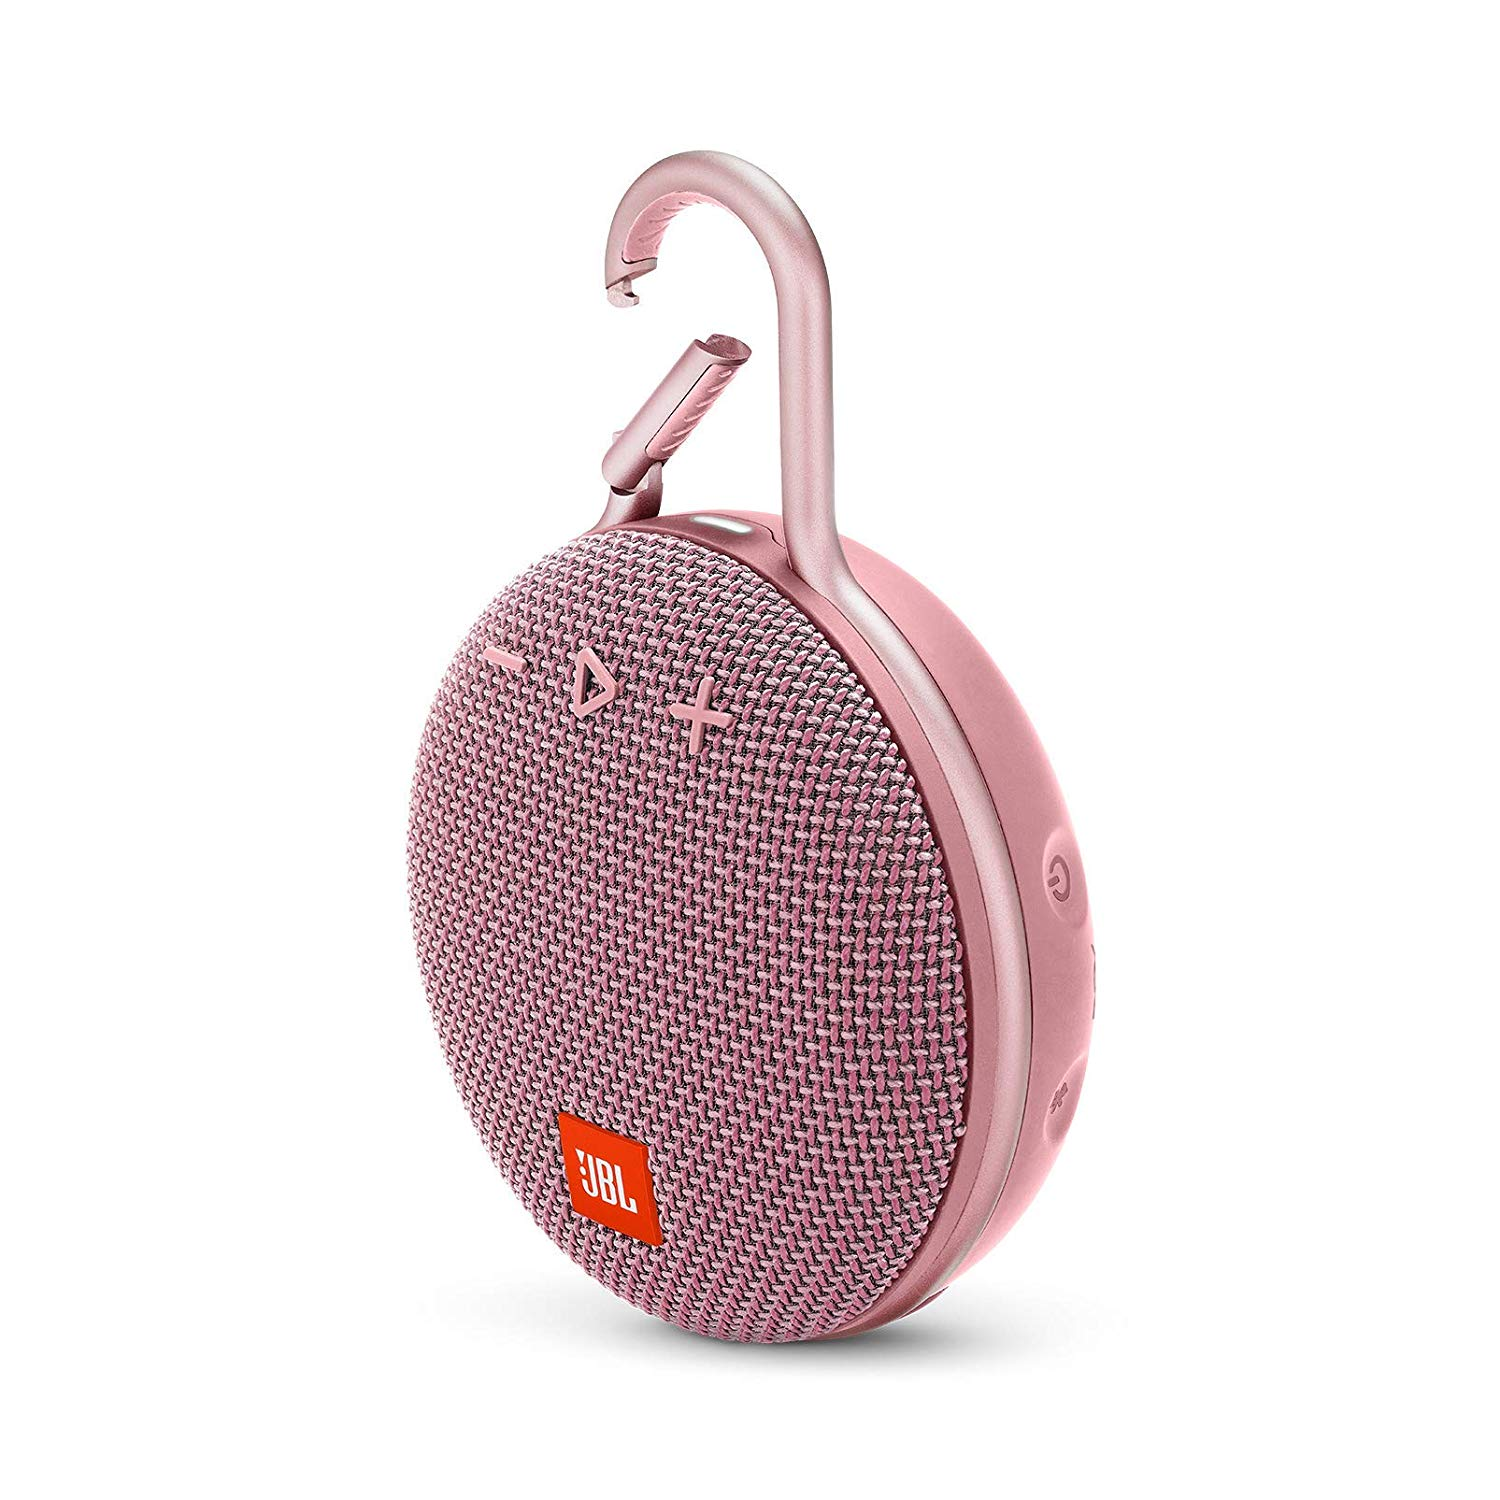 JBL Clip 3 Portable Waterproof Wireless Bluetooth Speaker - Pink - CLIP3-PINK